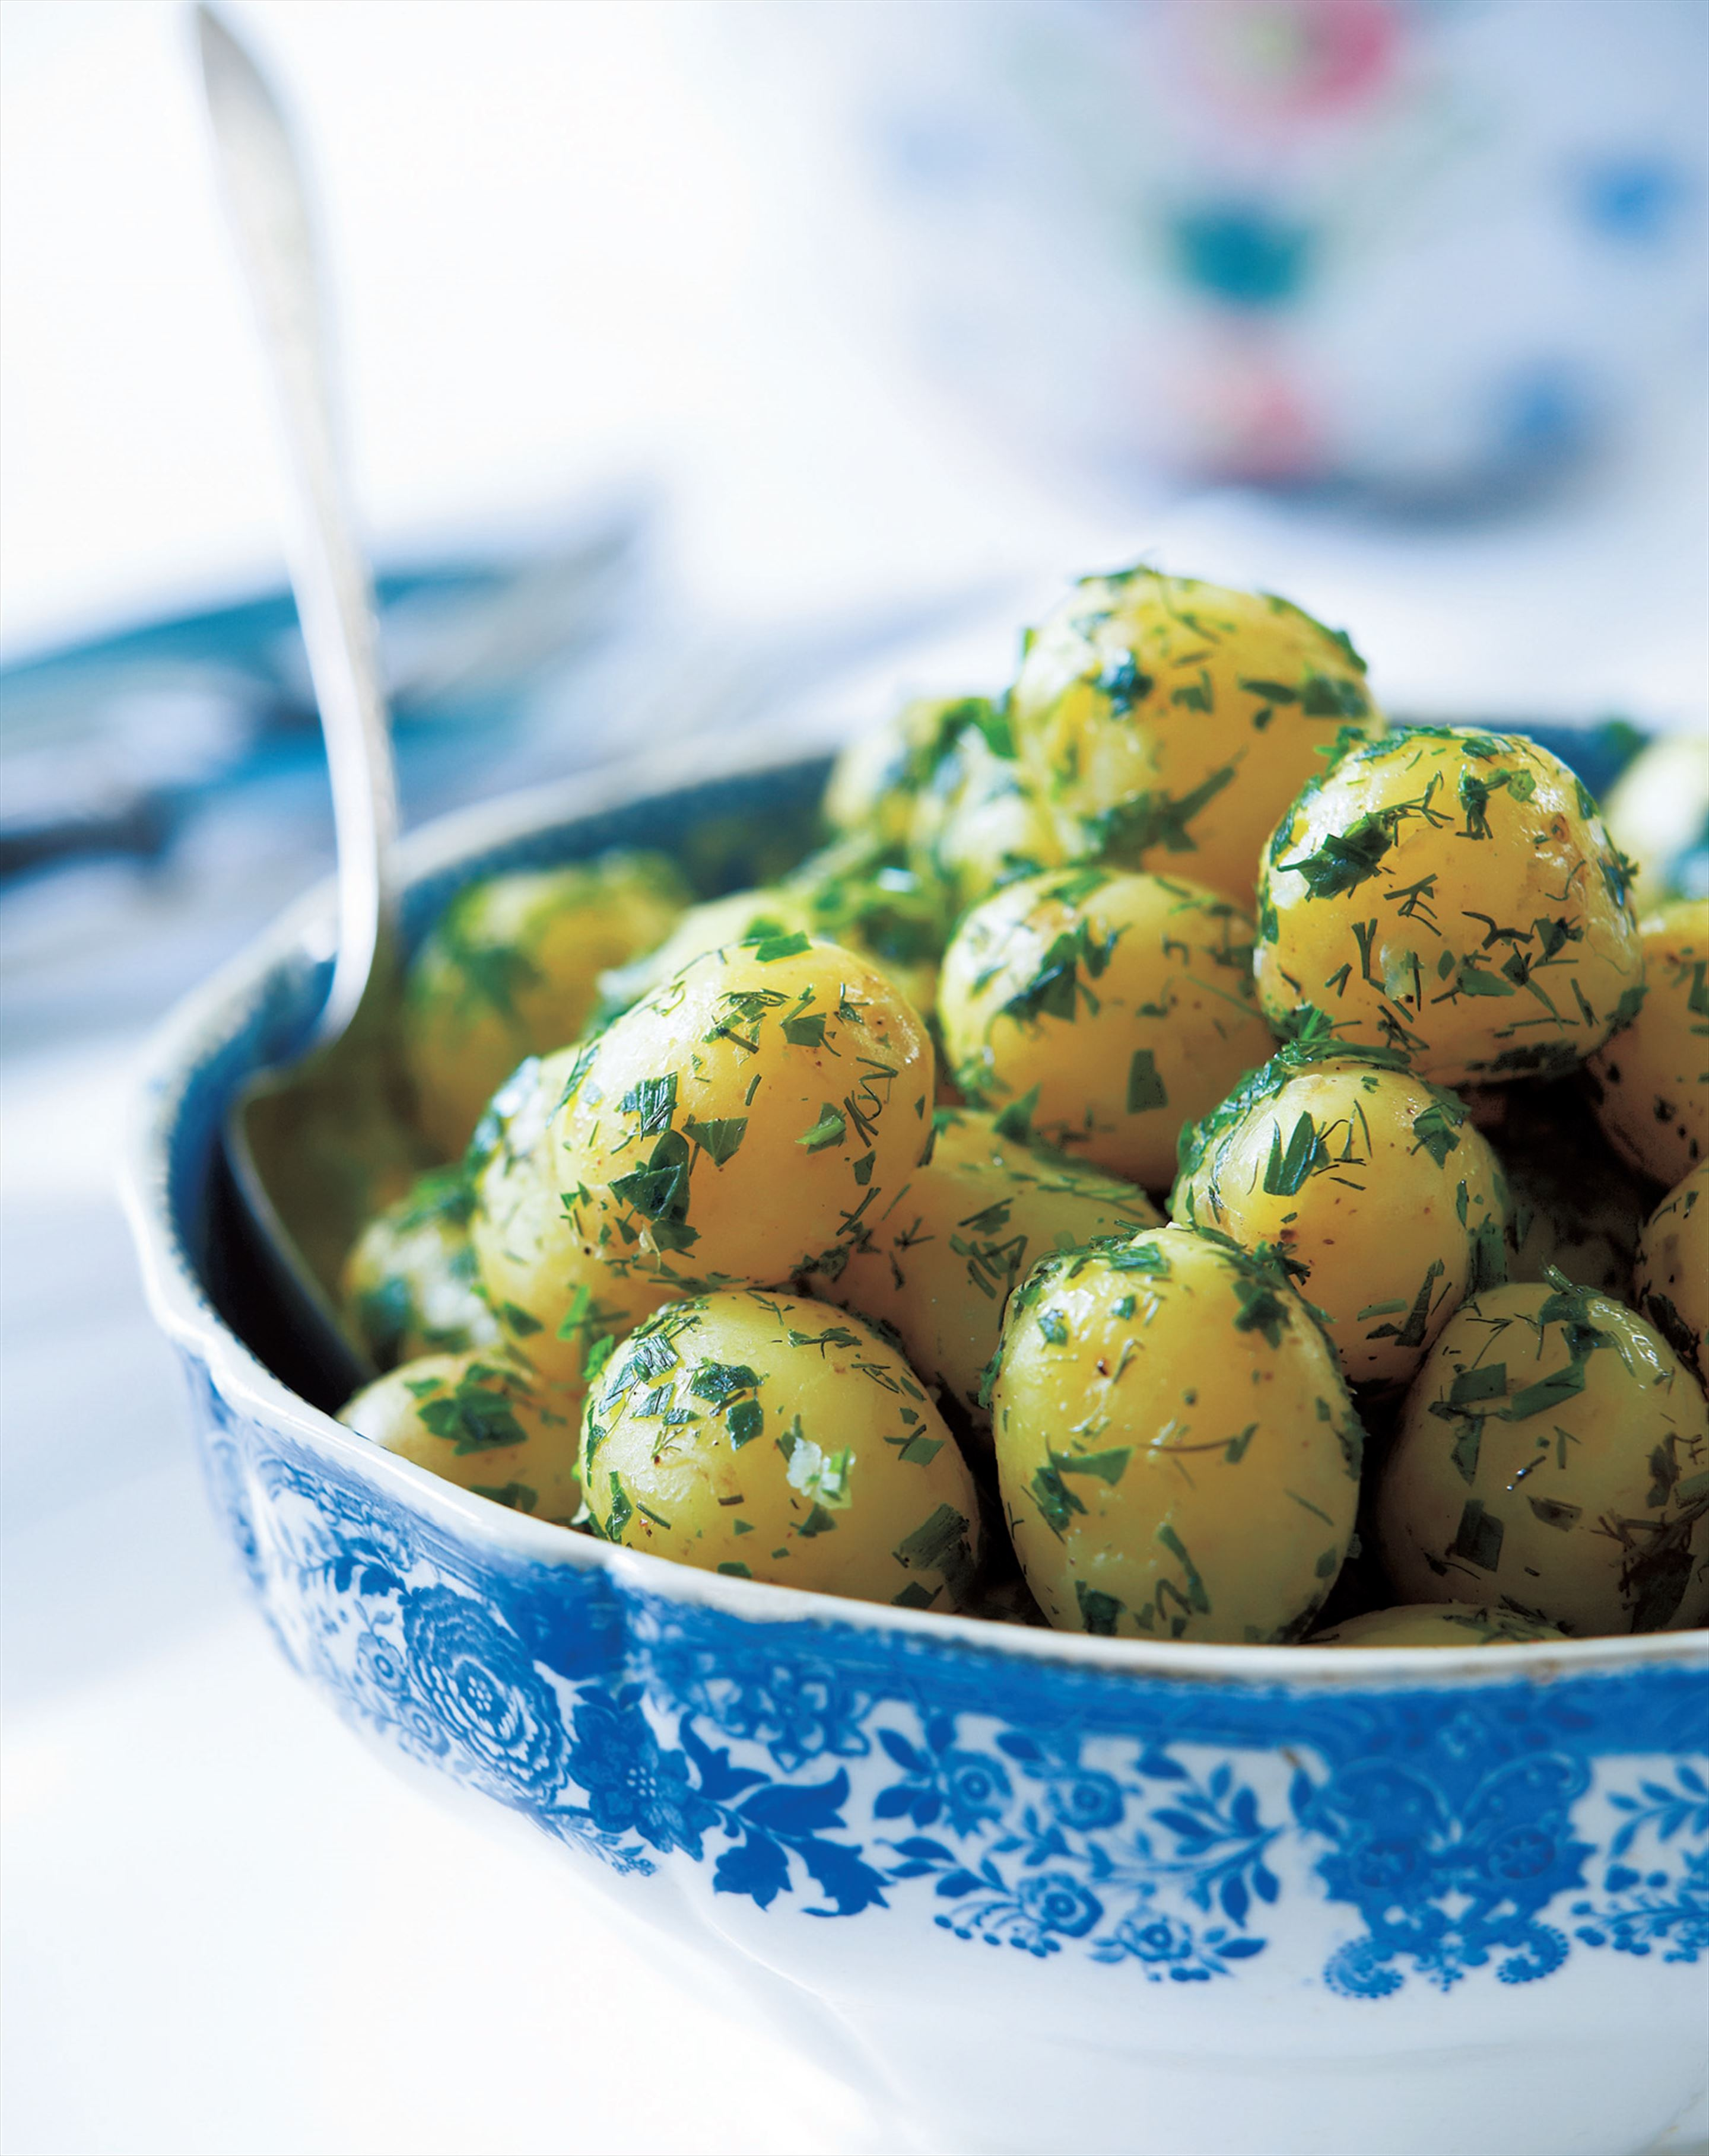 Potato salad with fresh herbs and spring onions